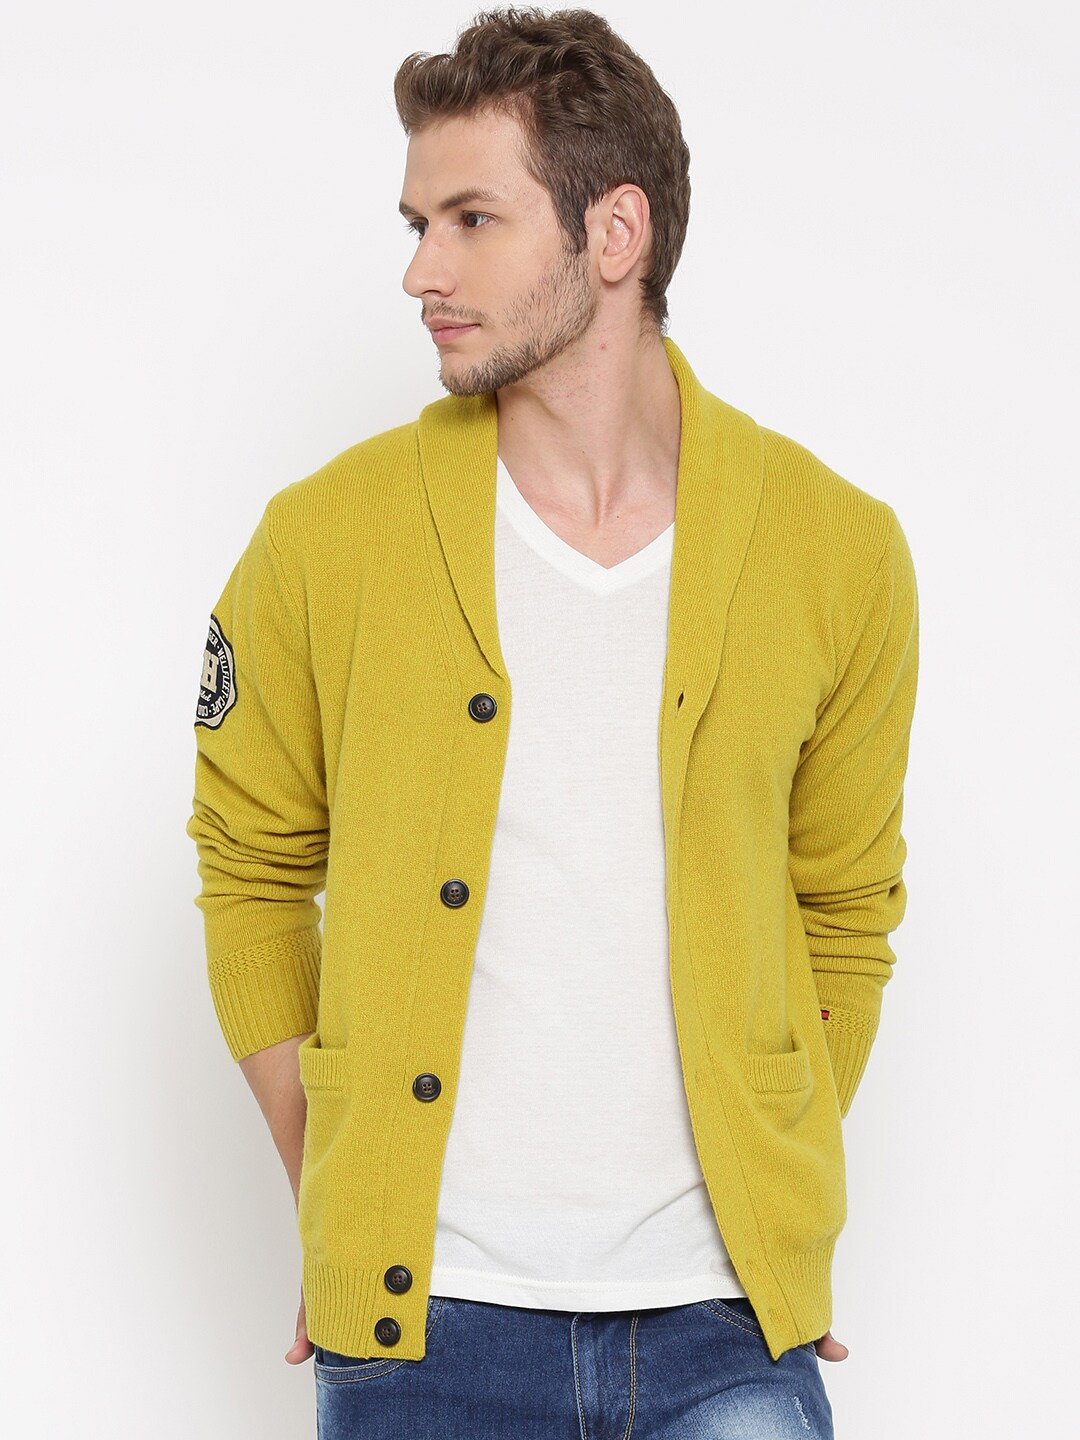 8c56d6cb586 Tommy hilfiger a4ams015 Men Lime Green Solid Cardigan- Price in India